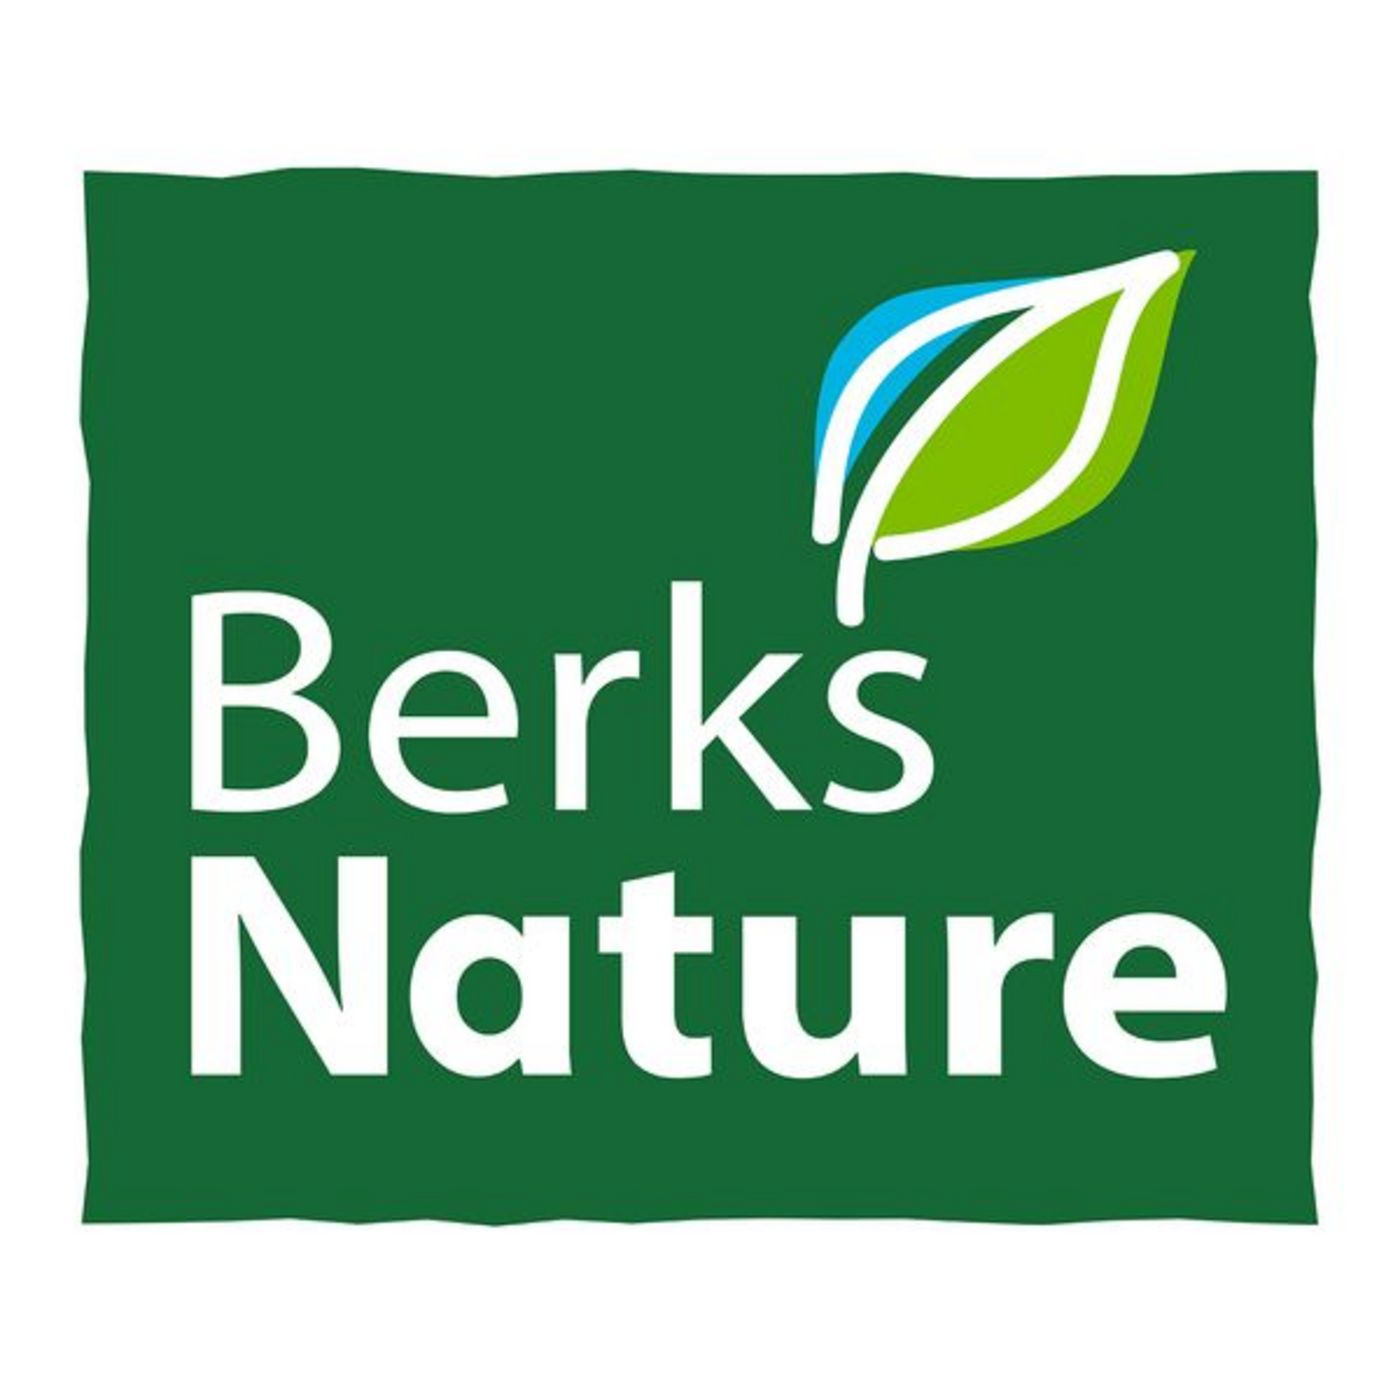 Berks Nature and You!